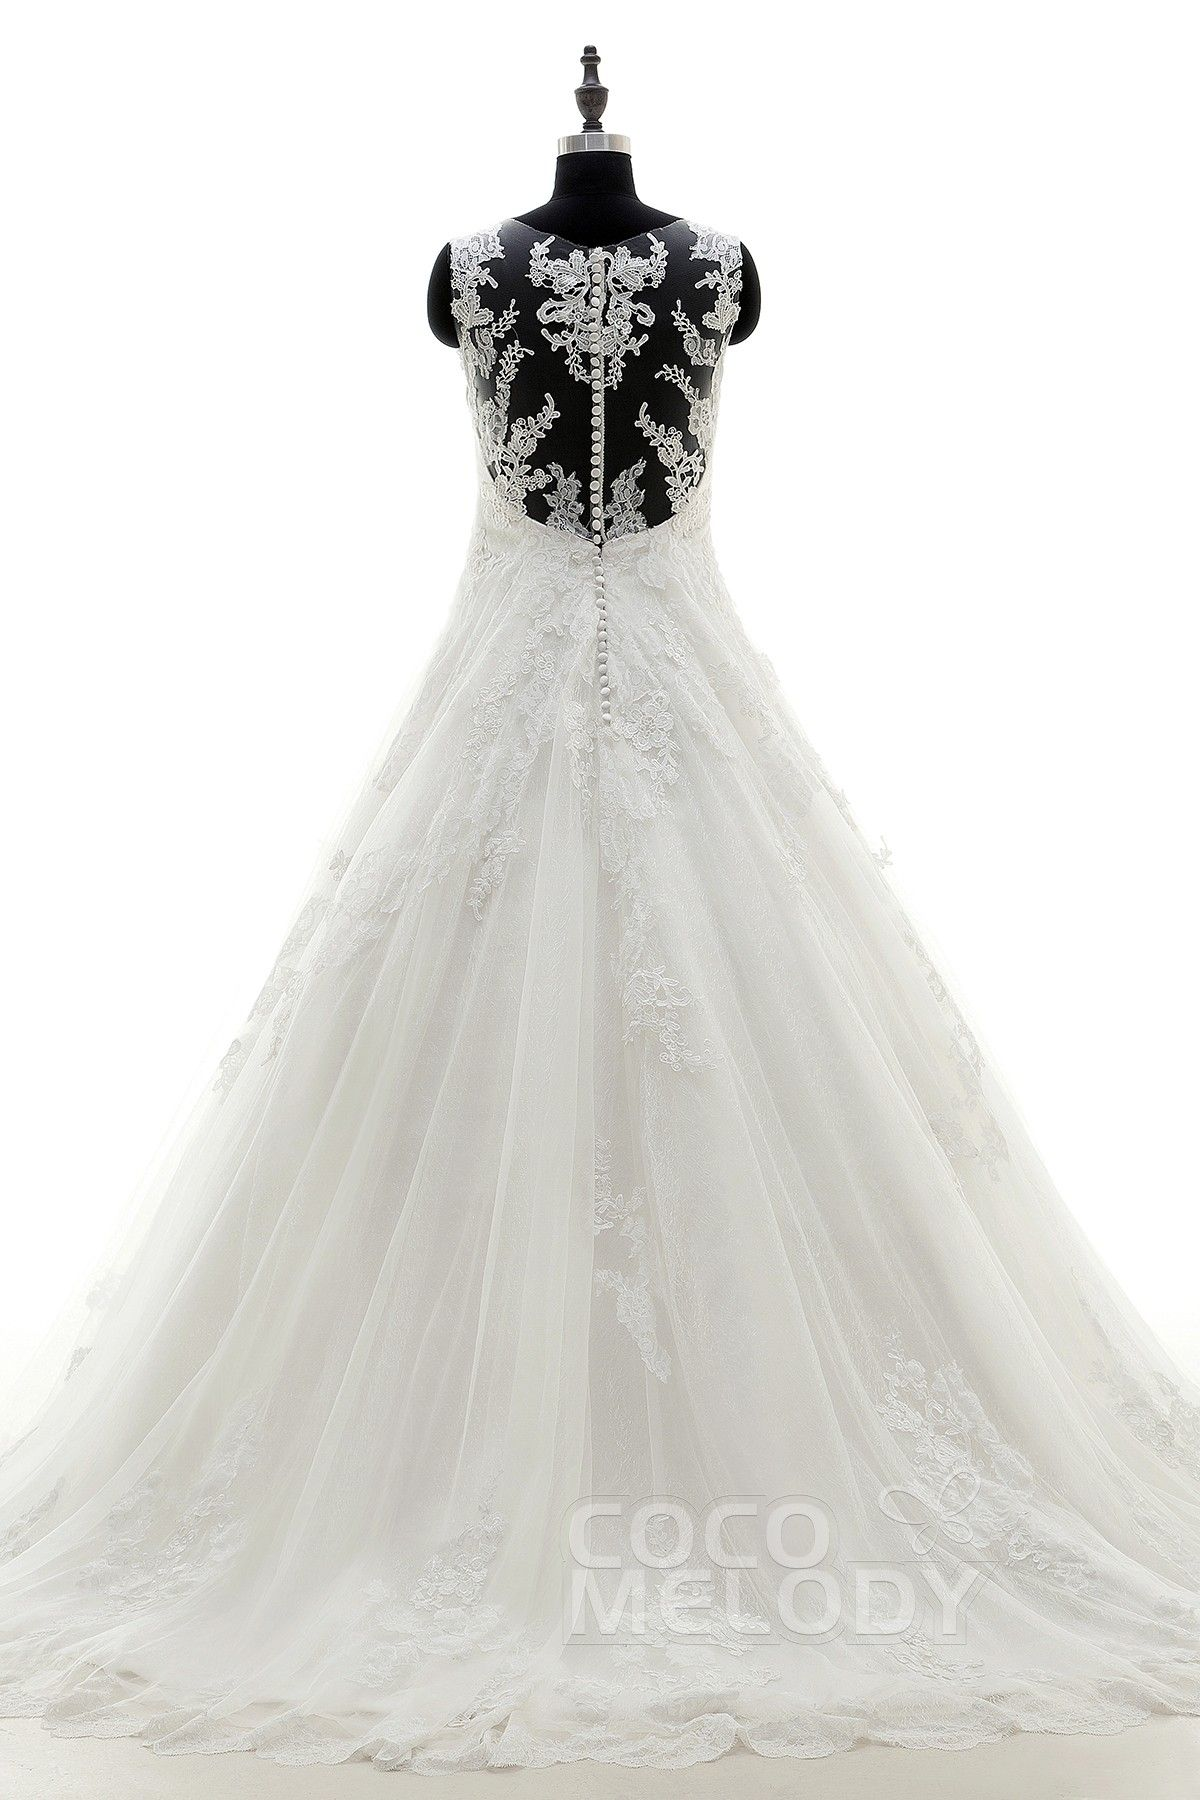 Fashion A-Line V-Neck Train Tulle Ivory Zipper With Button Wedding Dress with Appliques LD3831 #weddingdress #cocomelody